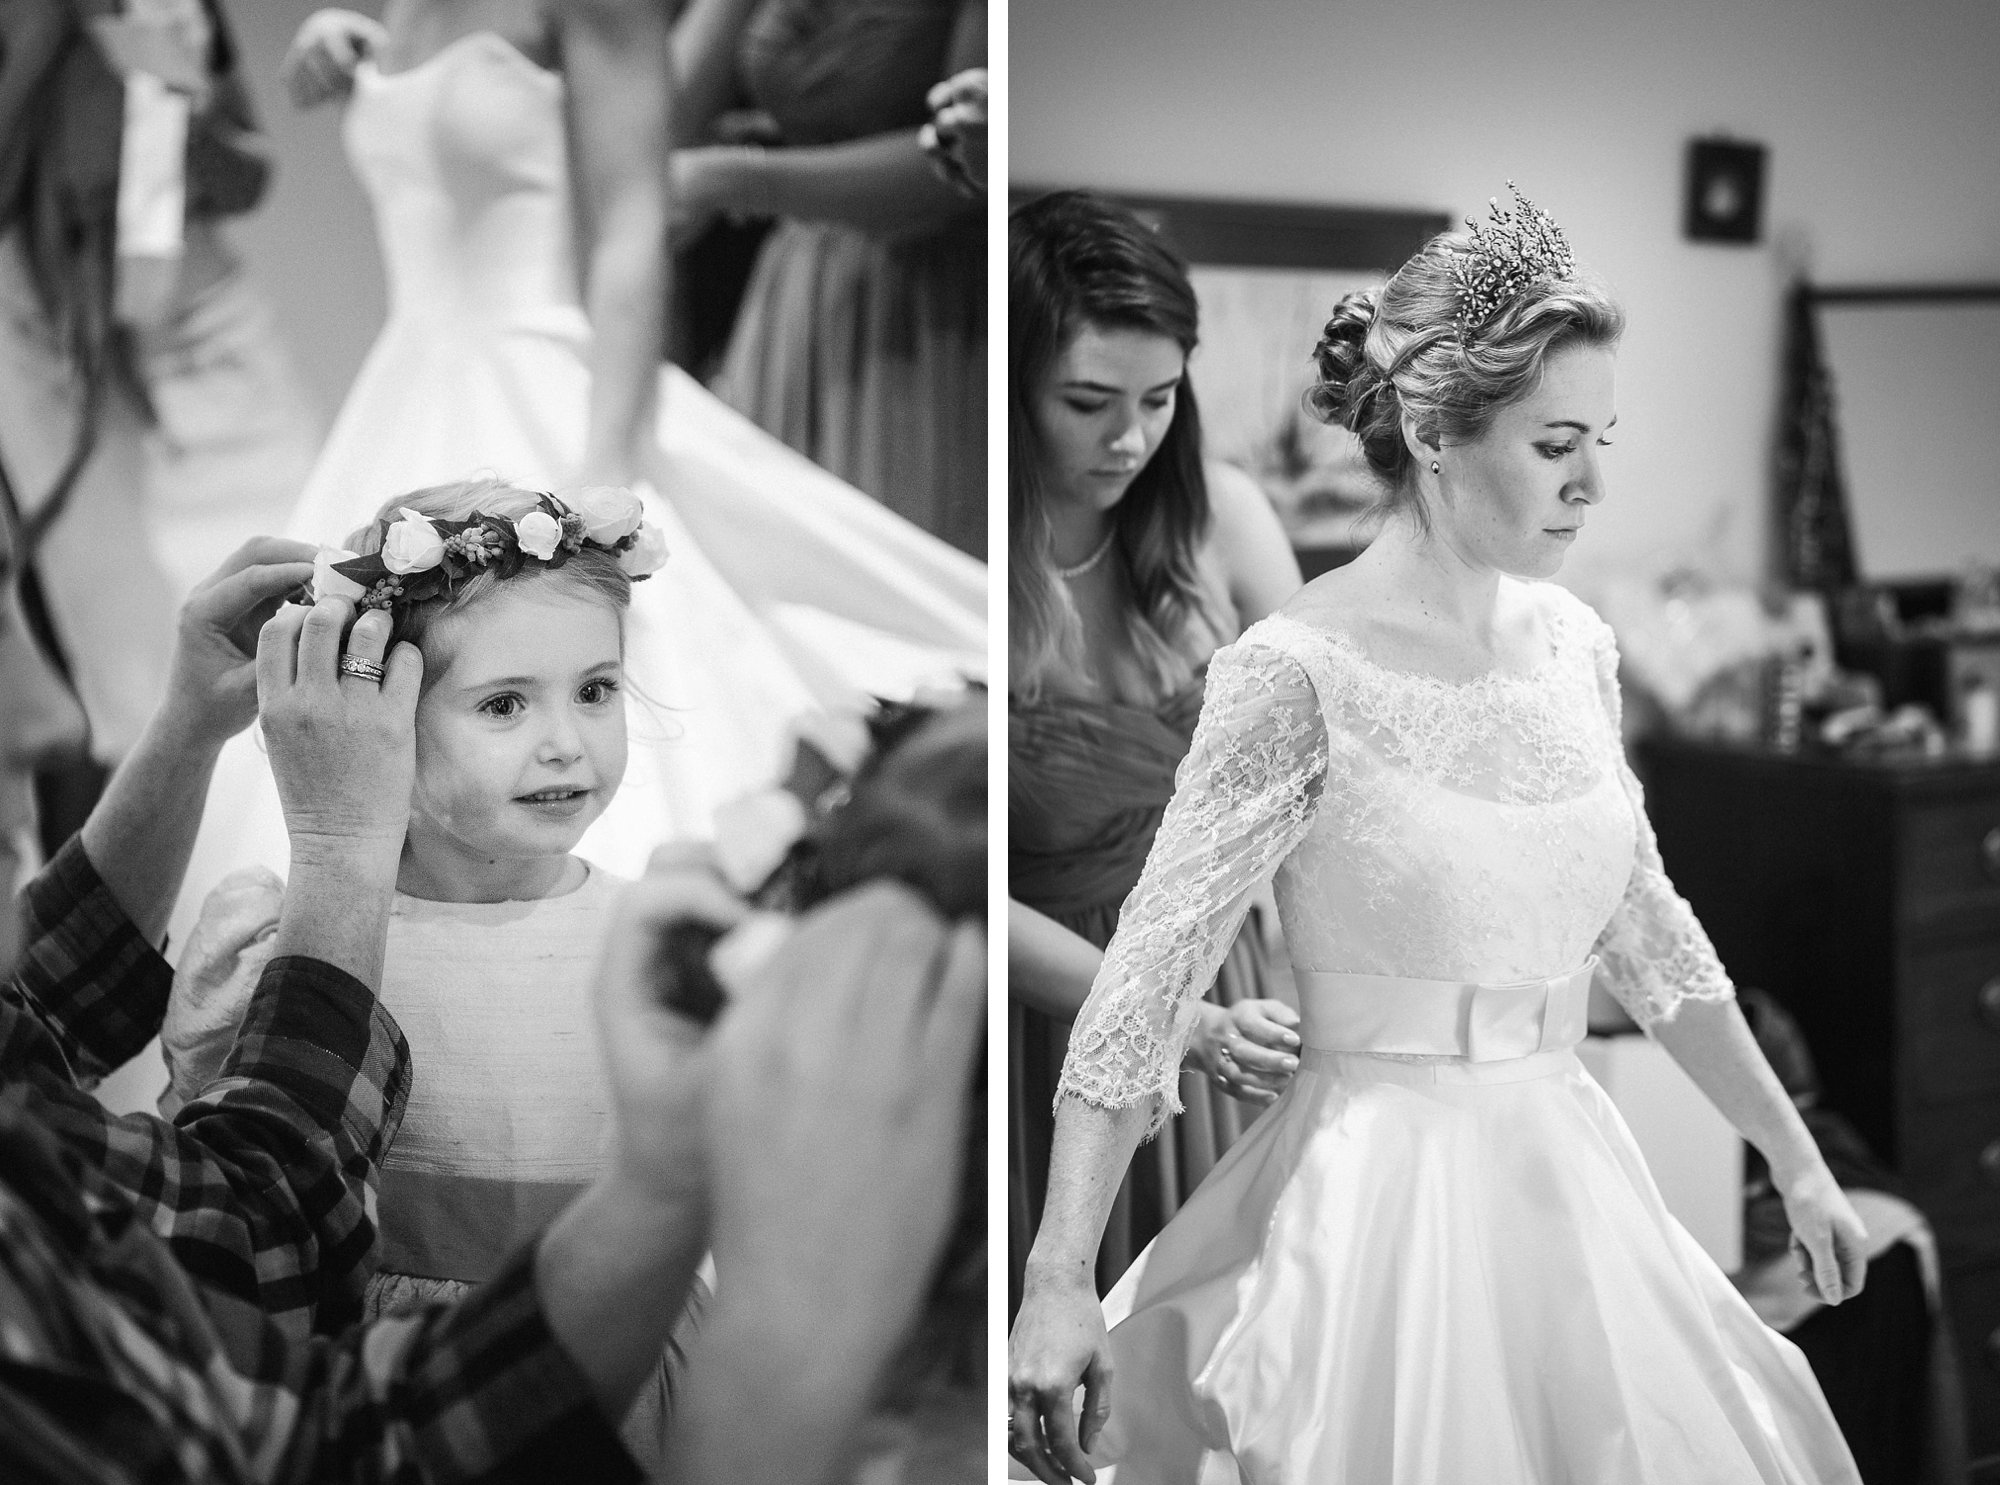 bride and flower girl get ready for the wedding ceremony